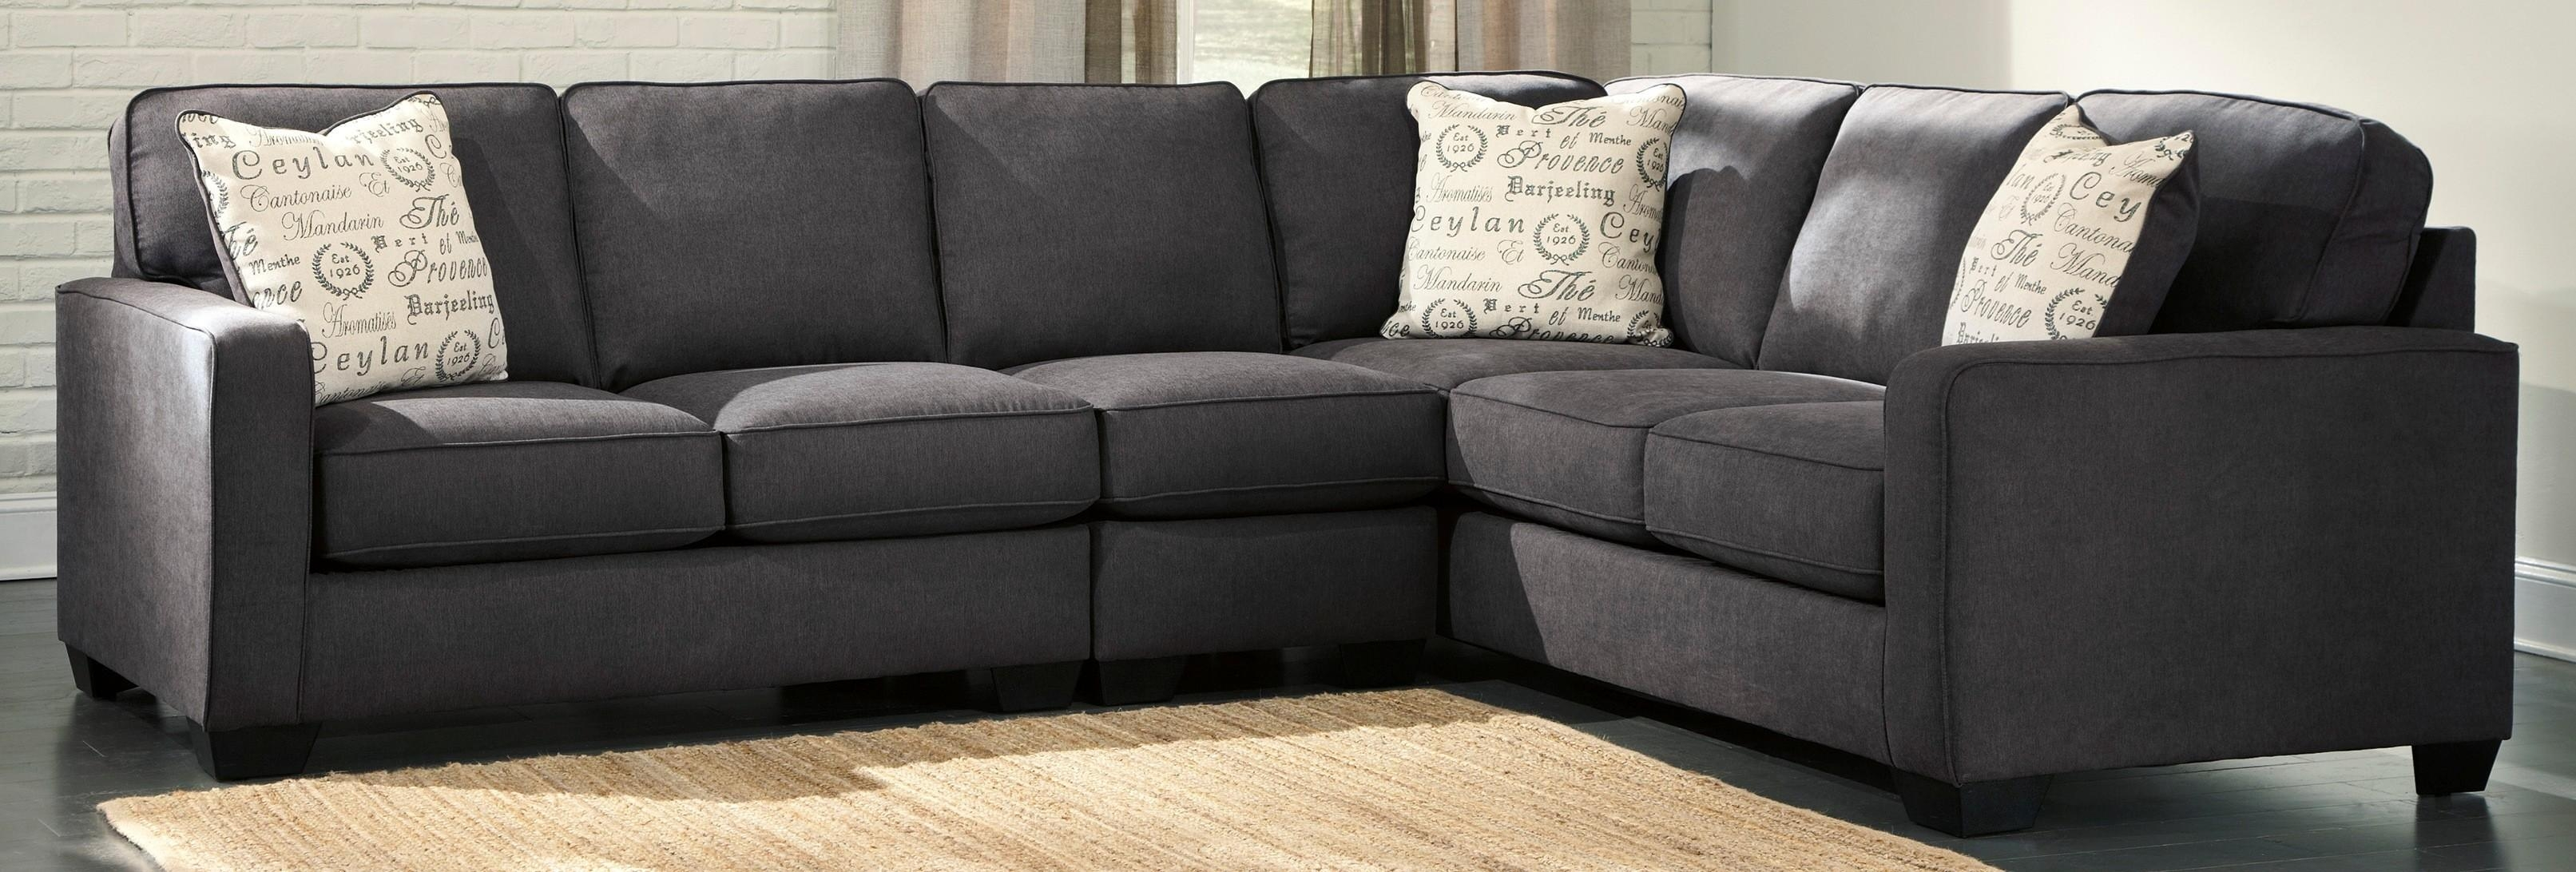 Sofas Center : Beautifularcoal Gray Sectional Sofa Pictures In Charcoal Gray Sectional Sofas (Image 13 of 20)